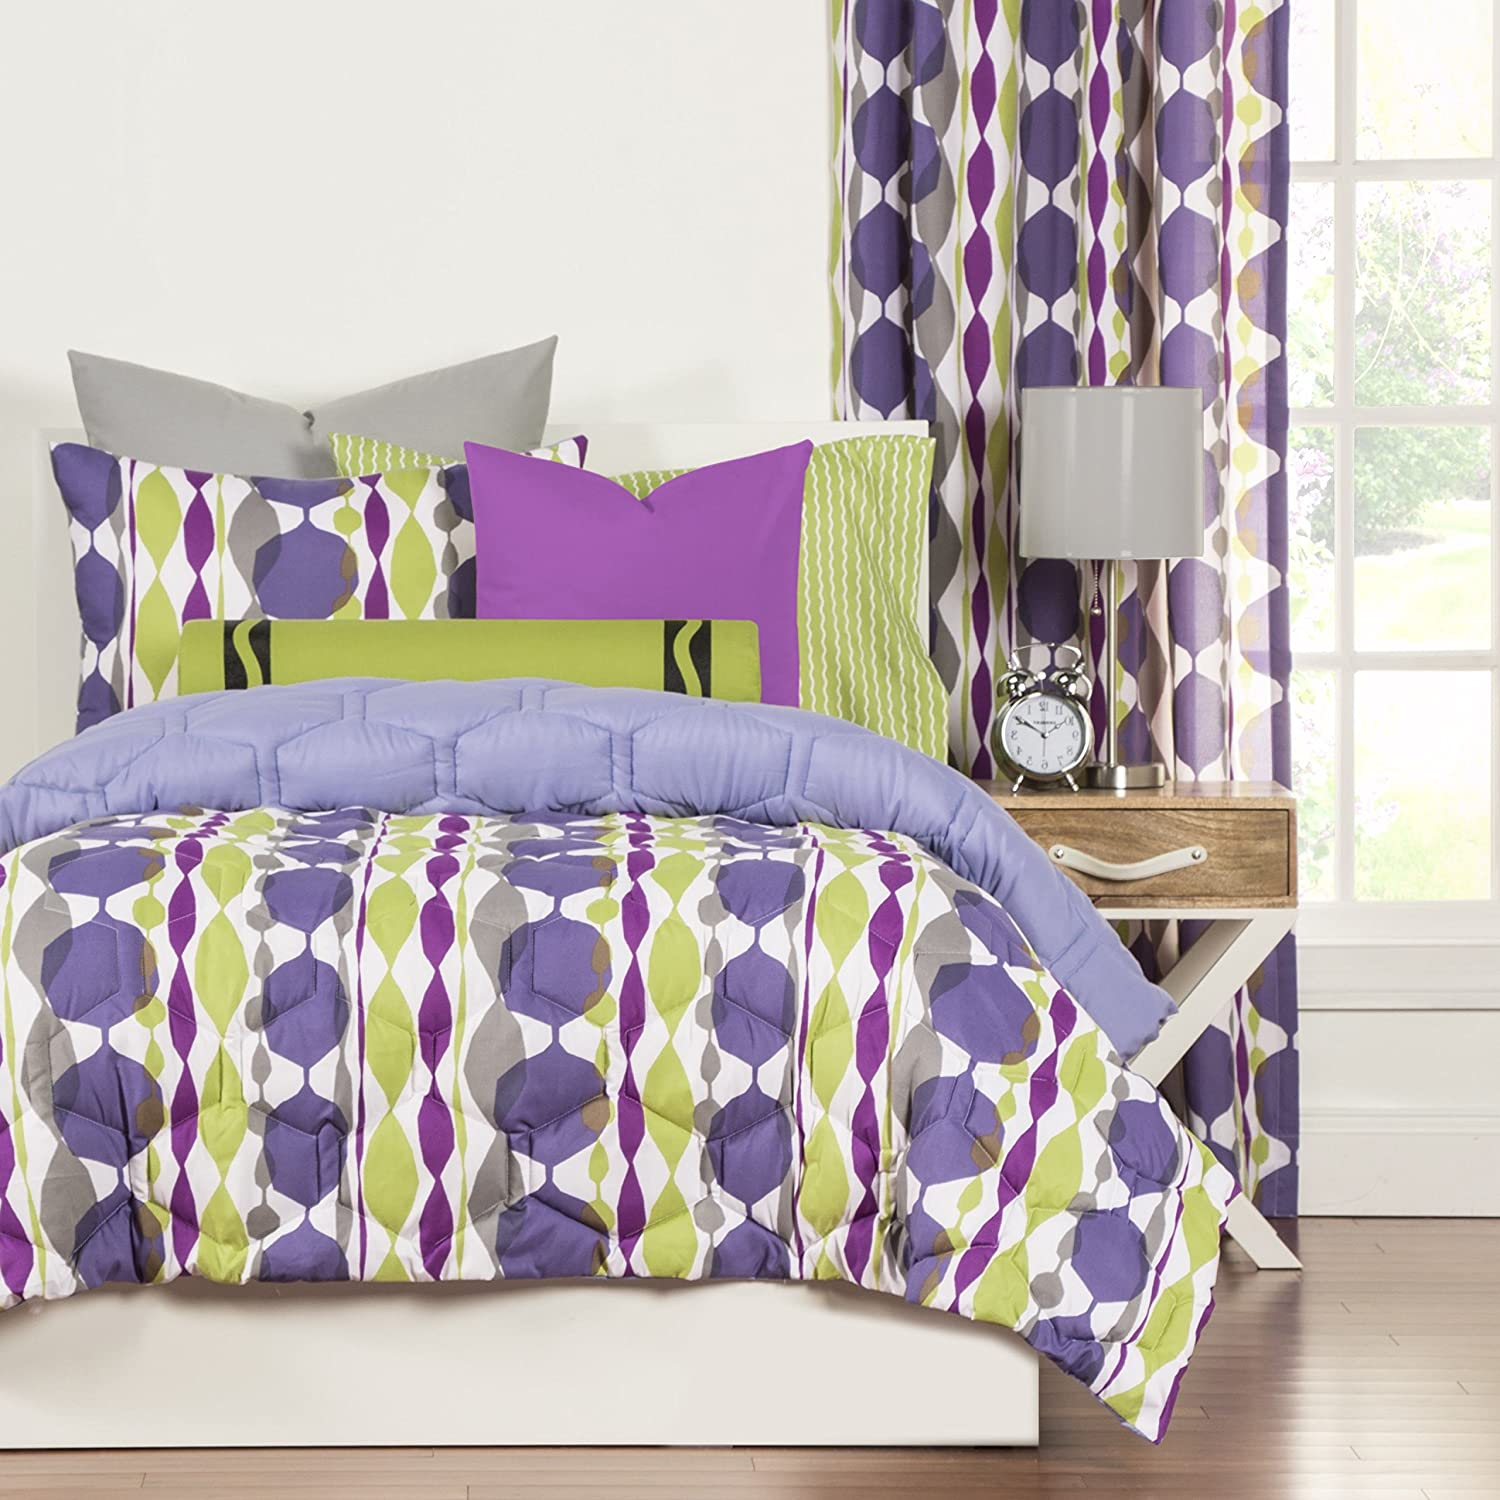 HT 2 Piece Multi Color Geometric Comforter Set Twin, Green Grey Purple White Graphic Medallion Stripe Jeweled Teen Themed Reversible Kids Bedding For Bedroom Modern Casual Colorful, Microfiber